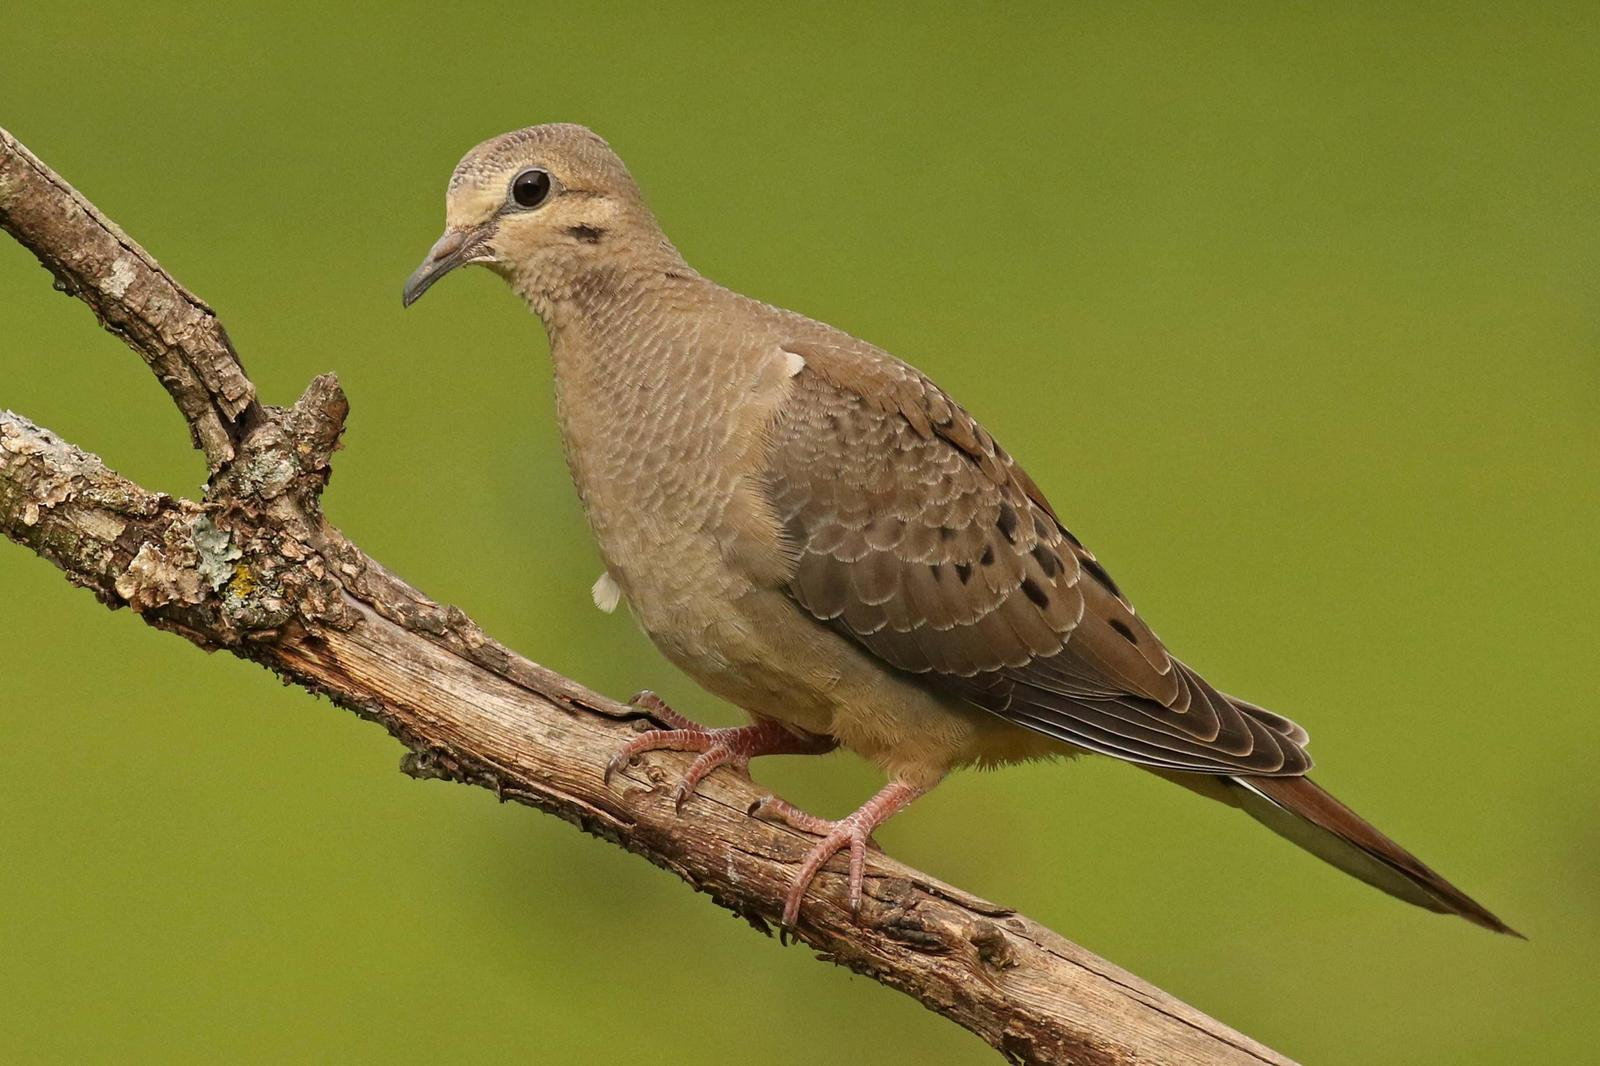 Mourning Dove Photo by Kristy Baker